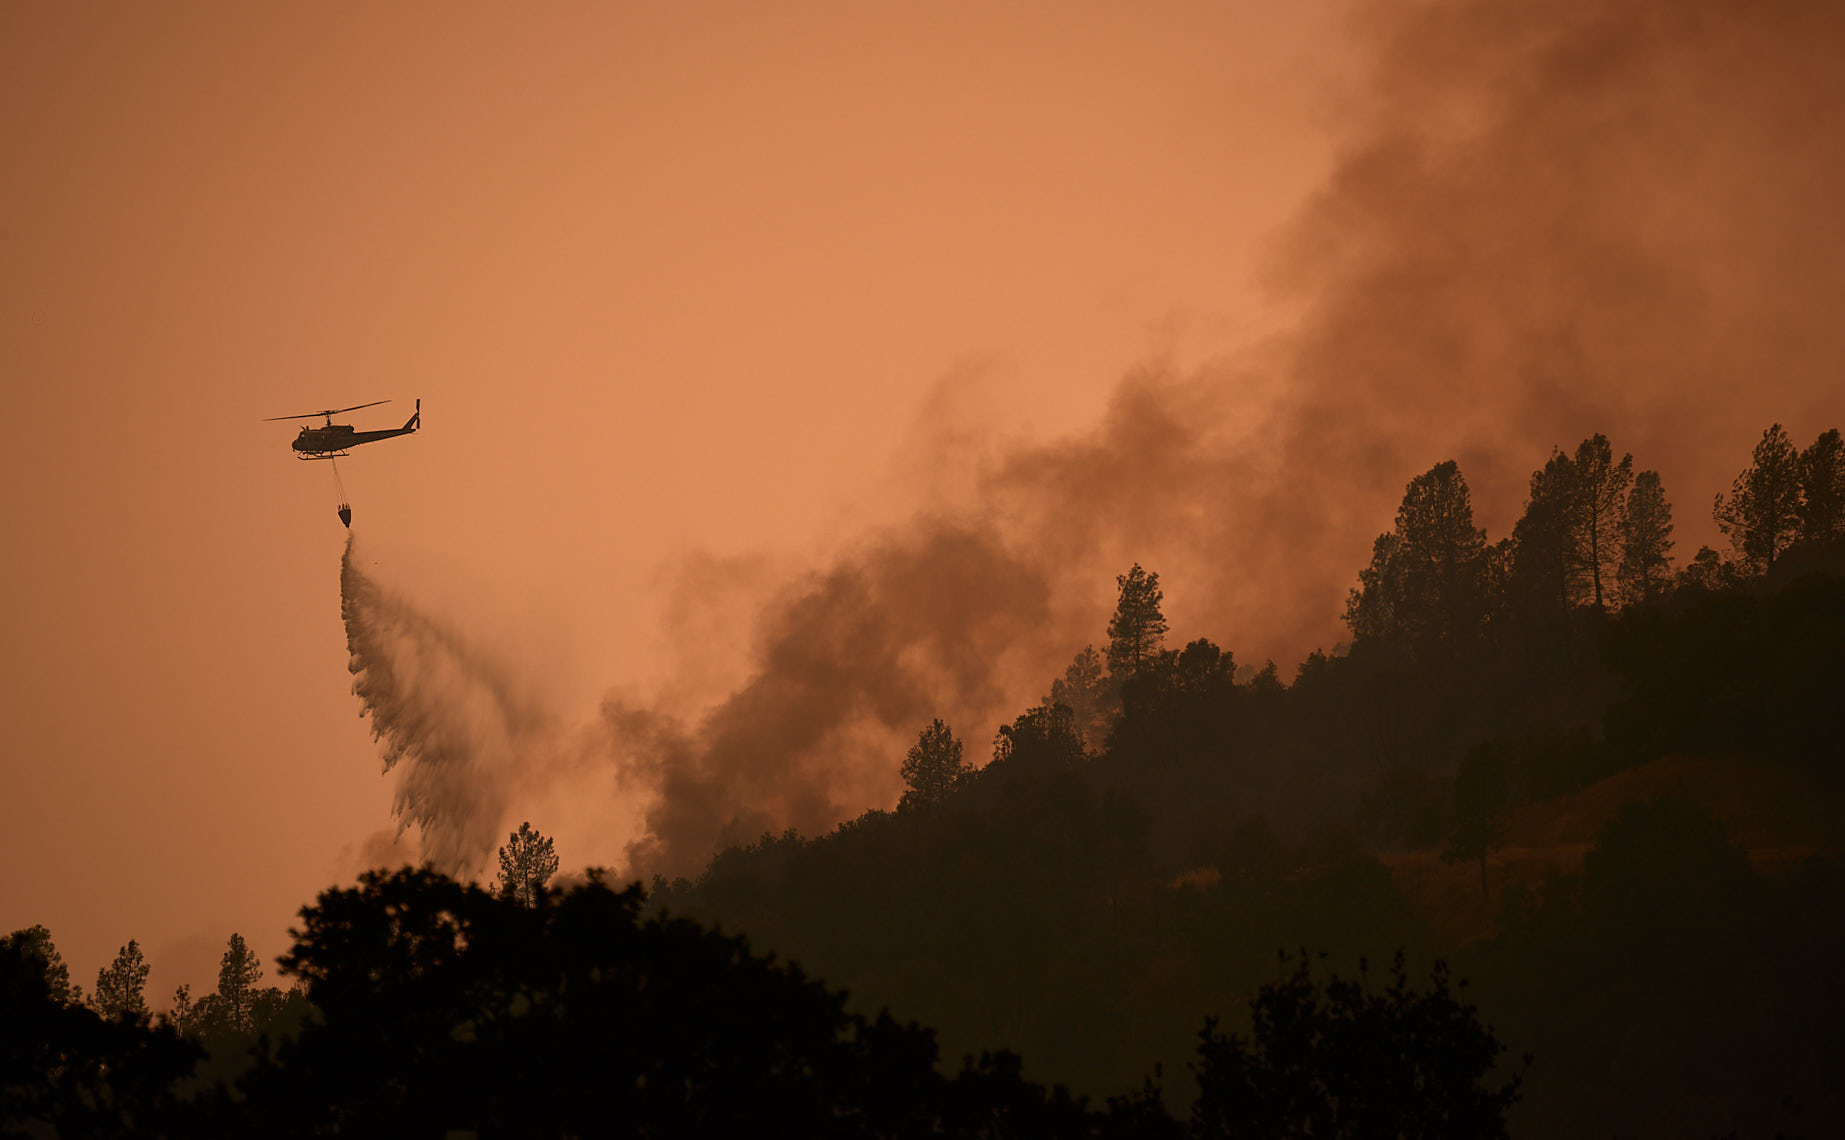 Silhouetted Helicopter Drops Water on Wildfire